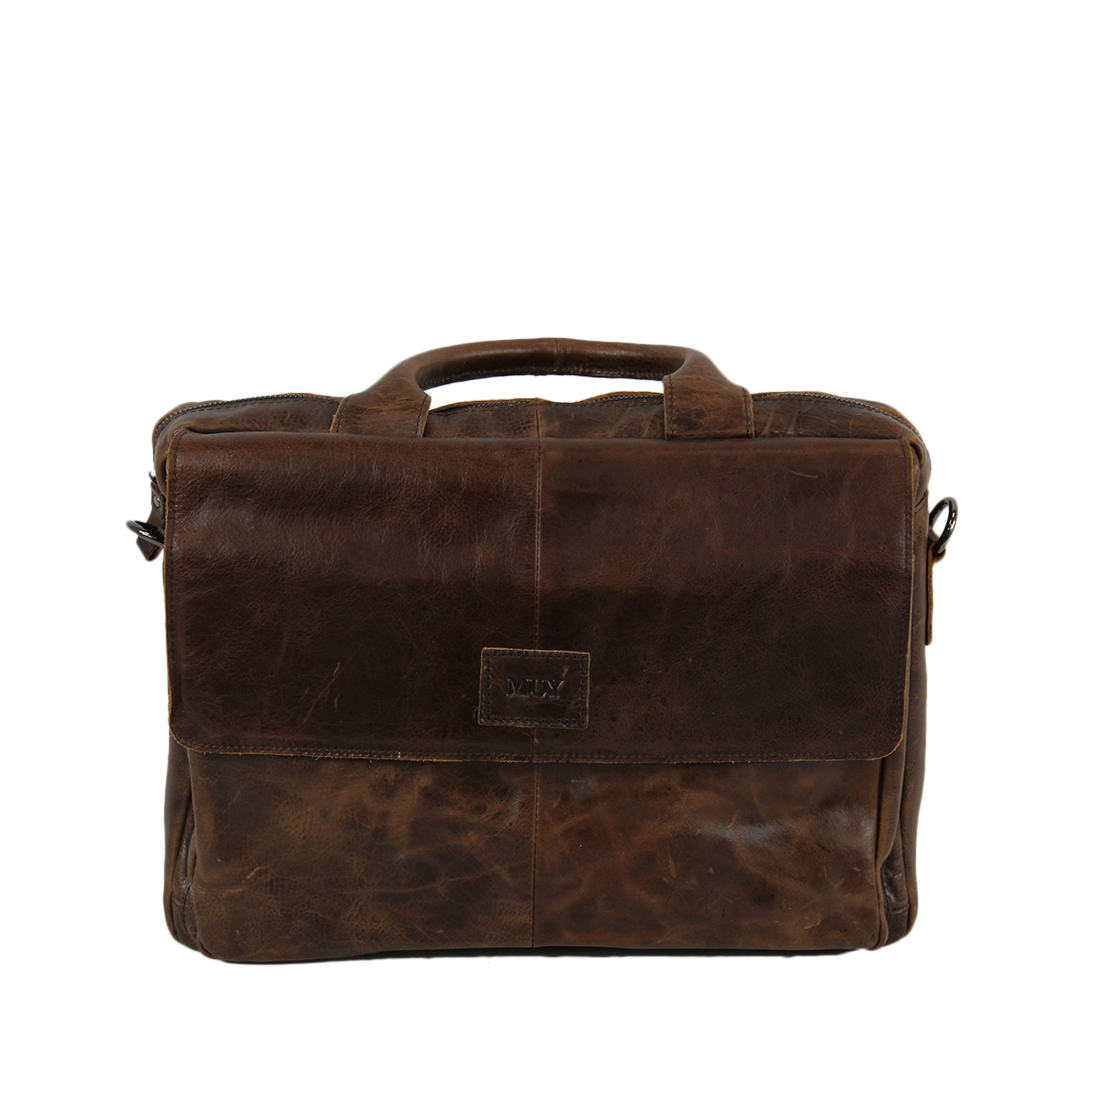 Old school real leather folded briefcase